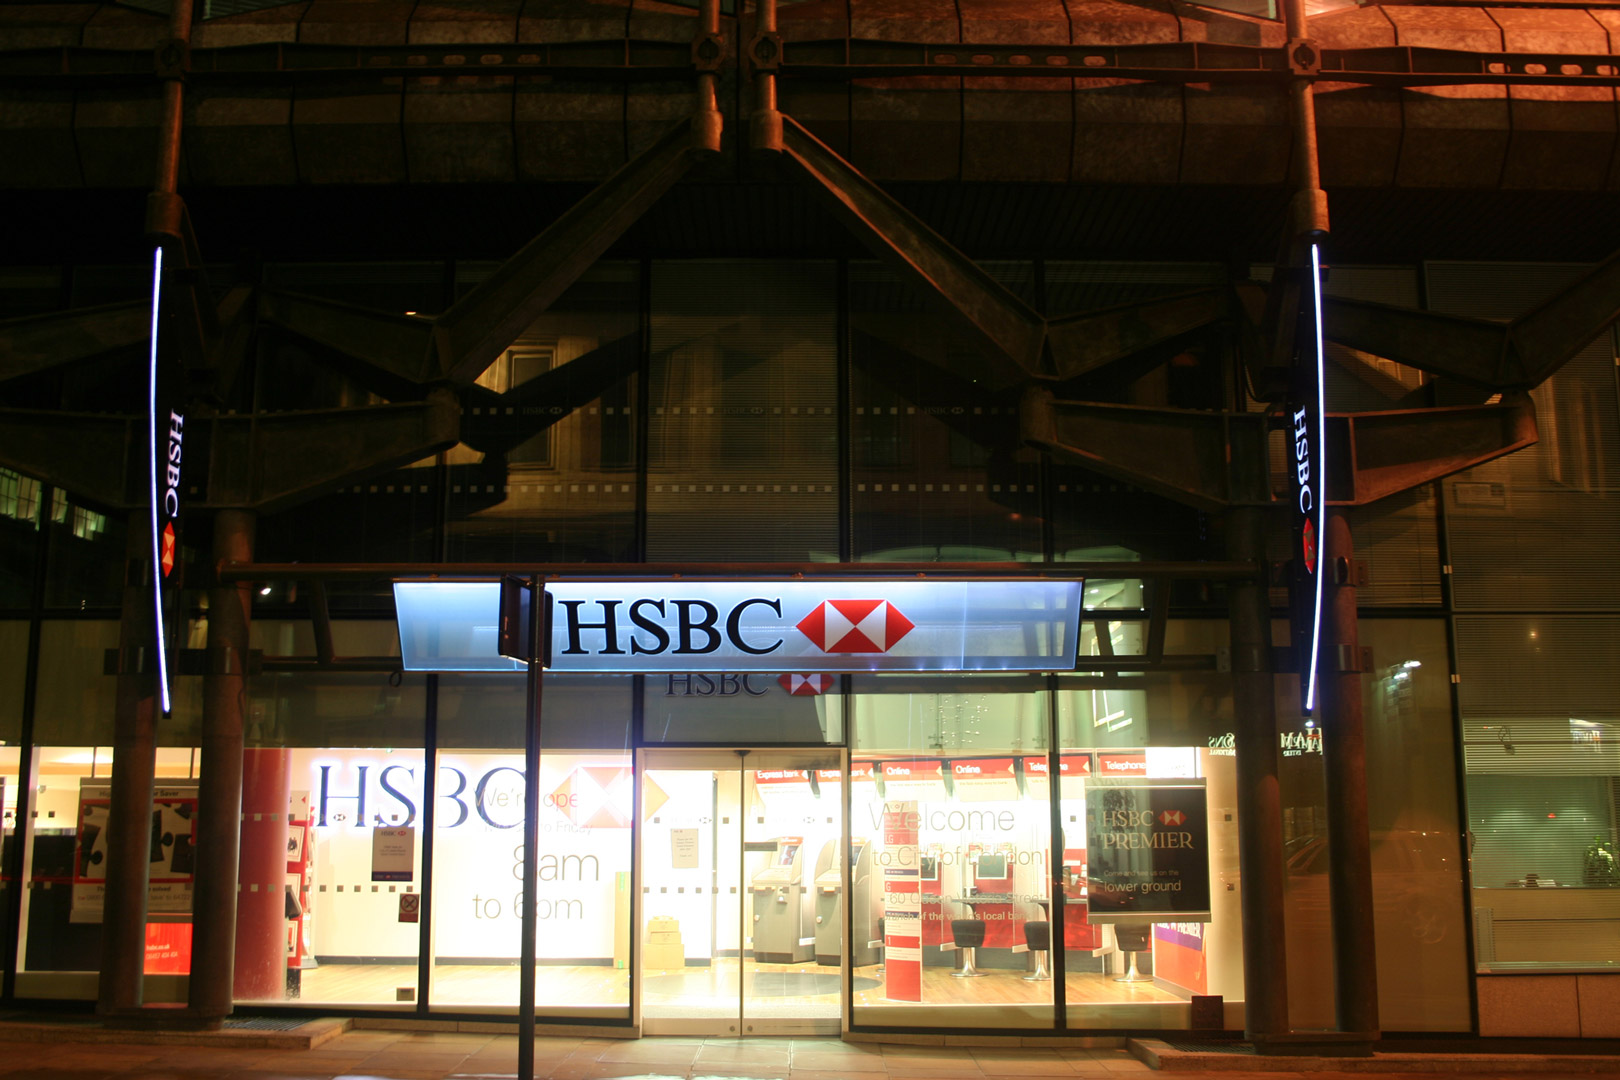 Lighting Installations | HSBC, UK | Light Lab